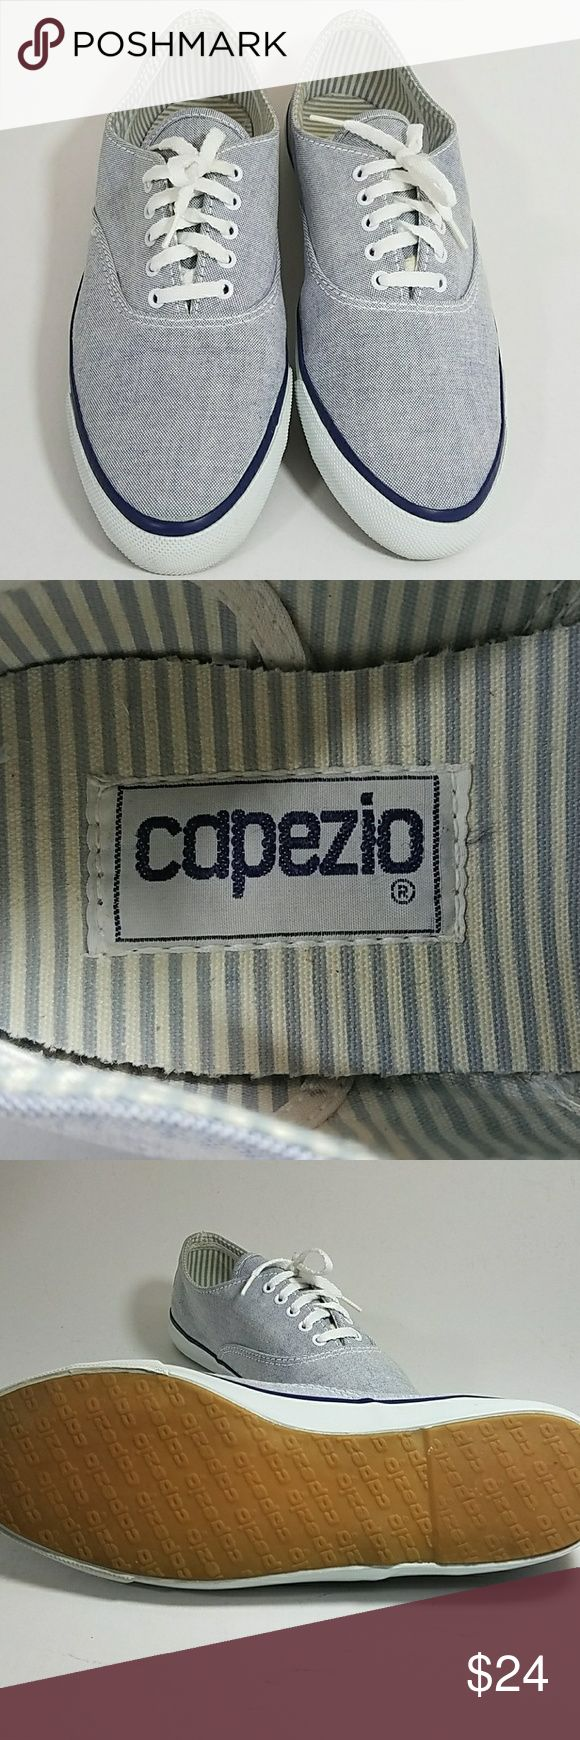 """Capezio boat / tennis shoes / sneakers sz 9 Capezio boat / tennis shoes / sneakers sz 9. Cute canvas tennis shoes in very good condition. The size is not annotated on the shoe however the inside sole from toe to heel is 10"""" which converts to a size 9, I reccommend doing this measurement with your own shoes to ensure proper fit.🌴 Capezio Shoes Sneakers"""